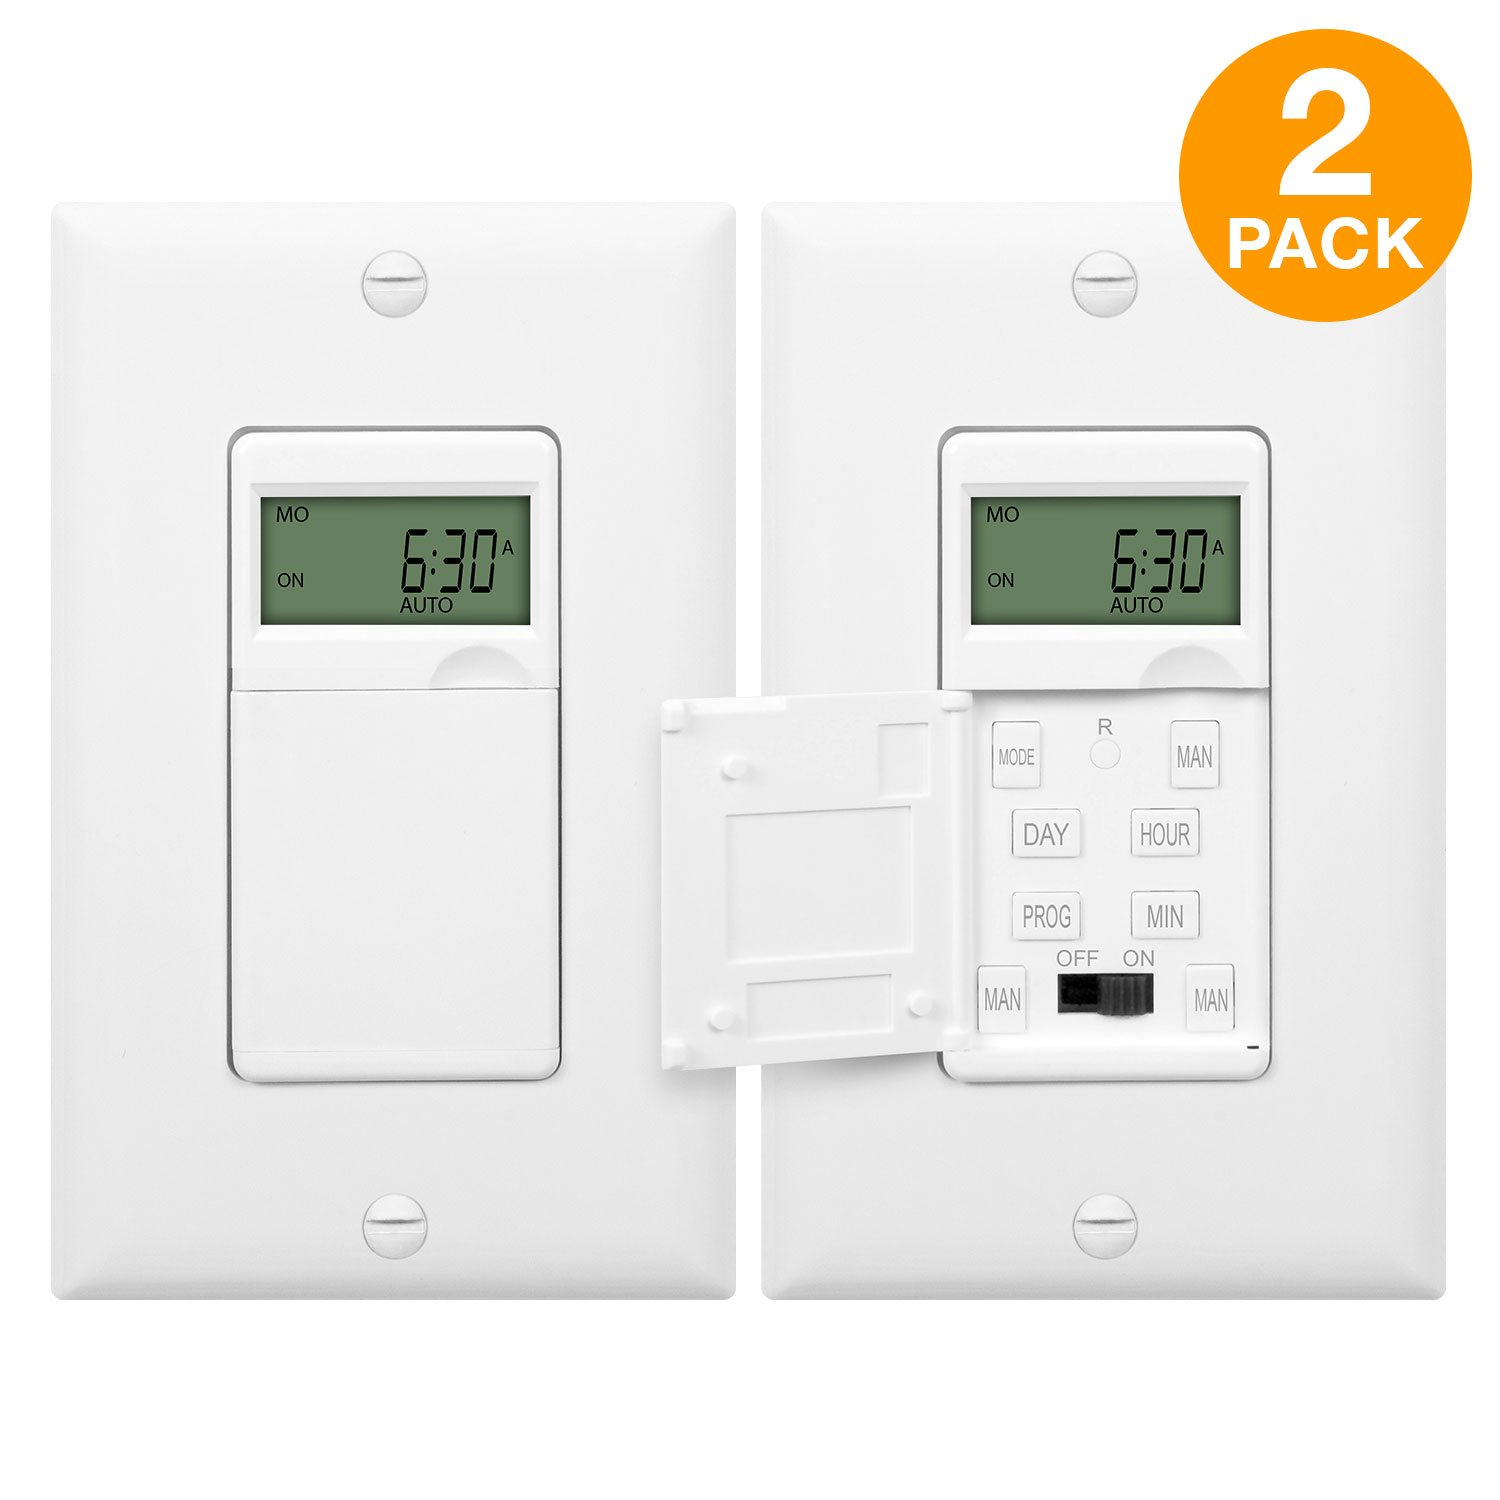 Enerlites HET01-C Programmable Timer Switch Digital Timer Switch for Lights, Fans, Motors, Timer in wall, 7-Day 18 ON/OFF Timer Settings, 2PCS. NEUTRAL WIRE REQUIRED, White by Enerlites